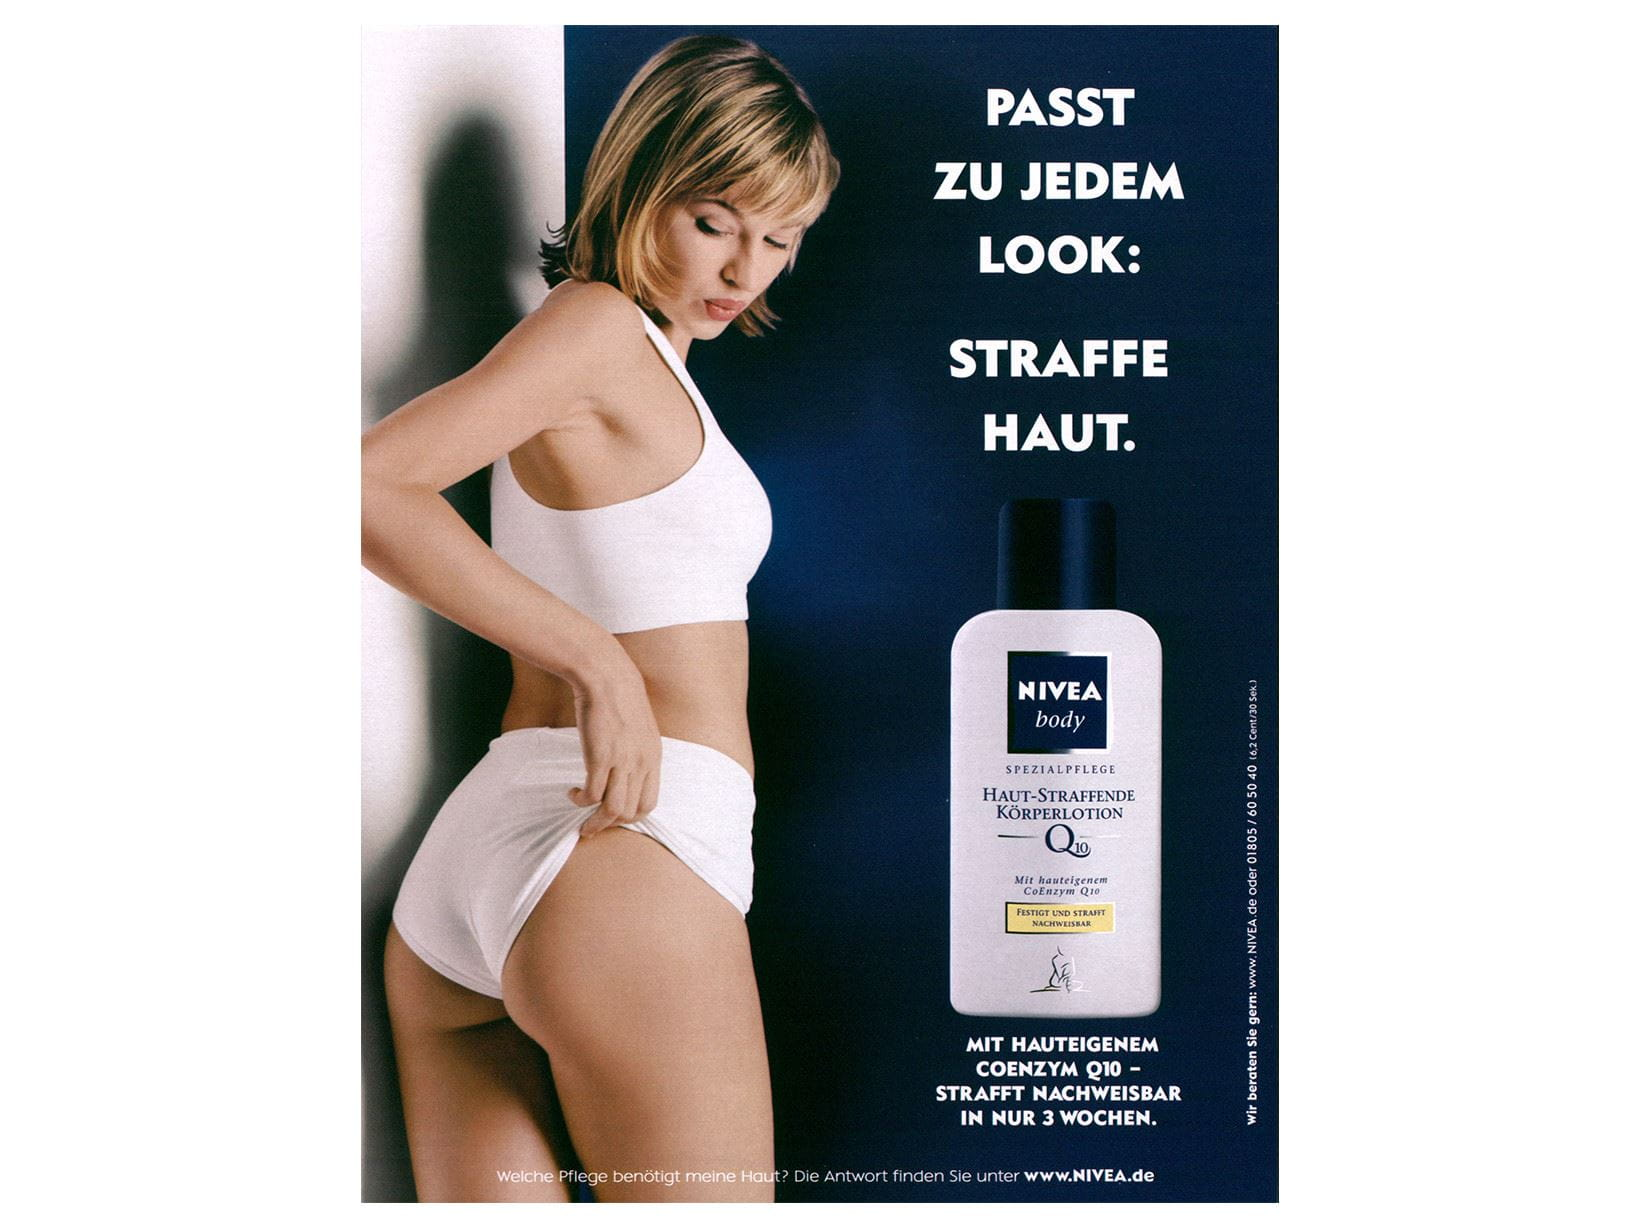 NIVEA advertisement Body Lotion Q10 2002